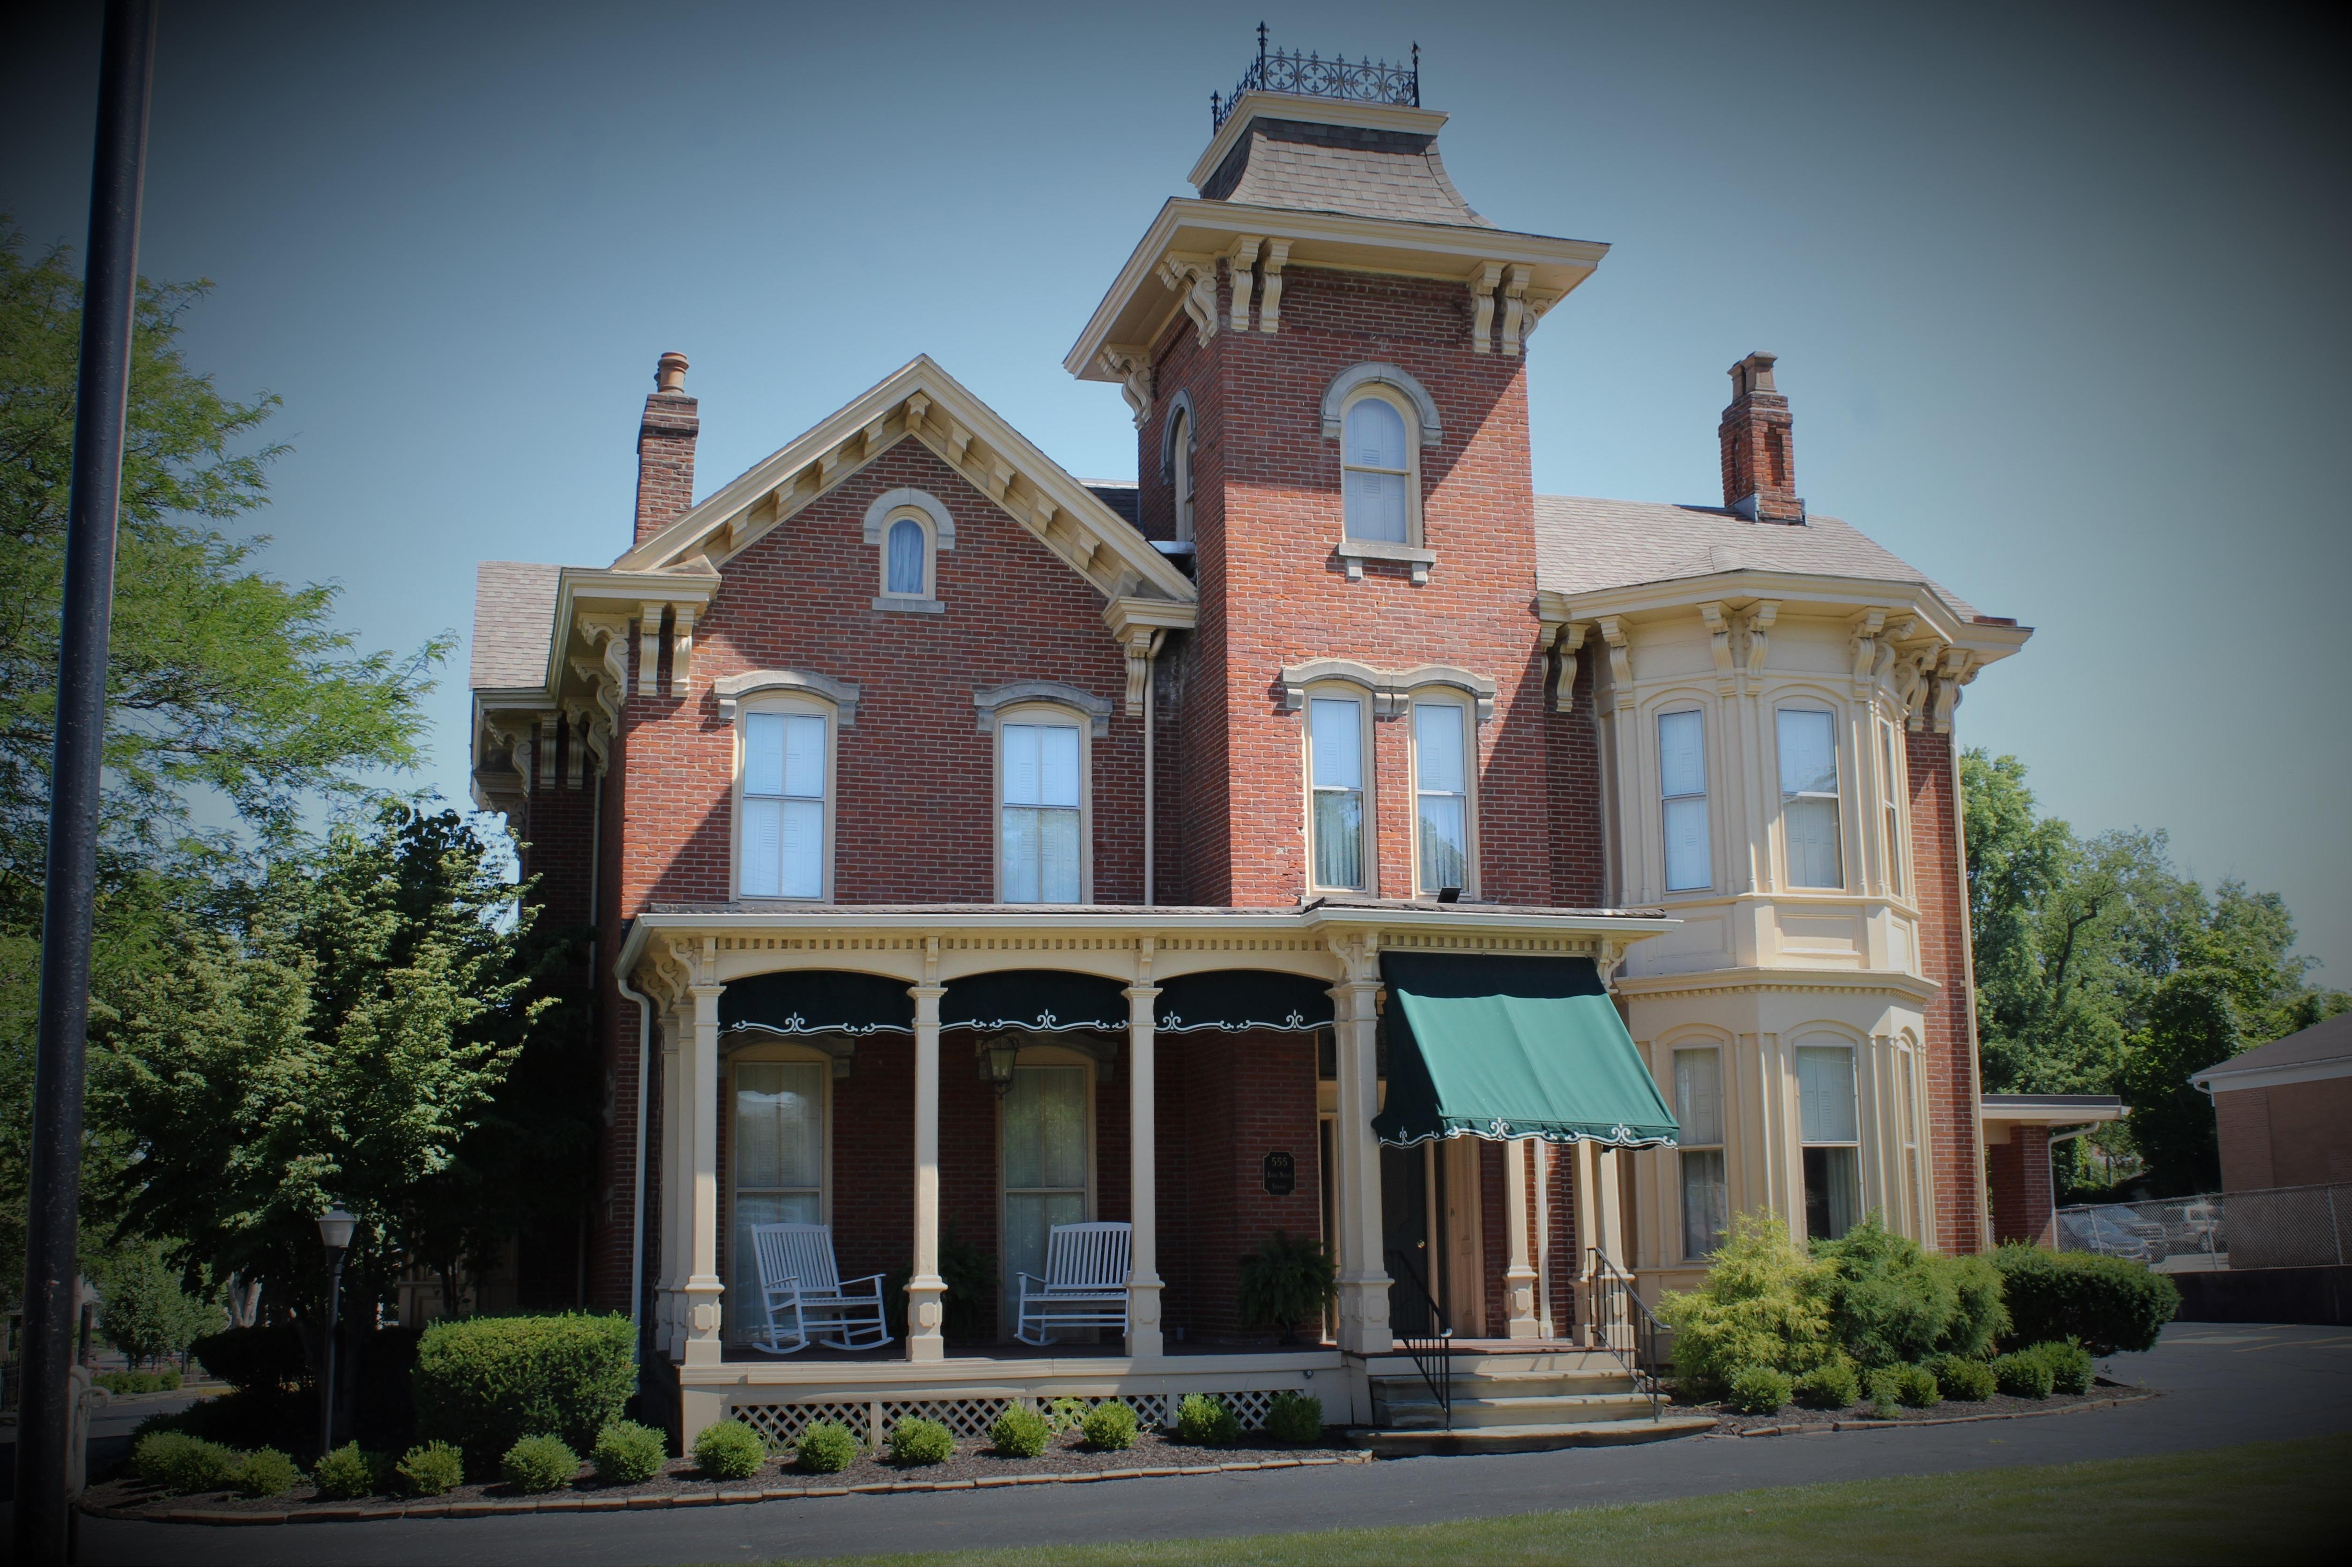 Sample-O'Donnell Funeral Home image 0